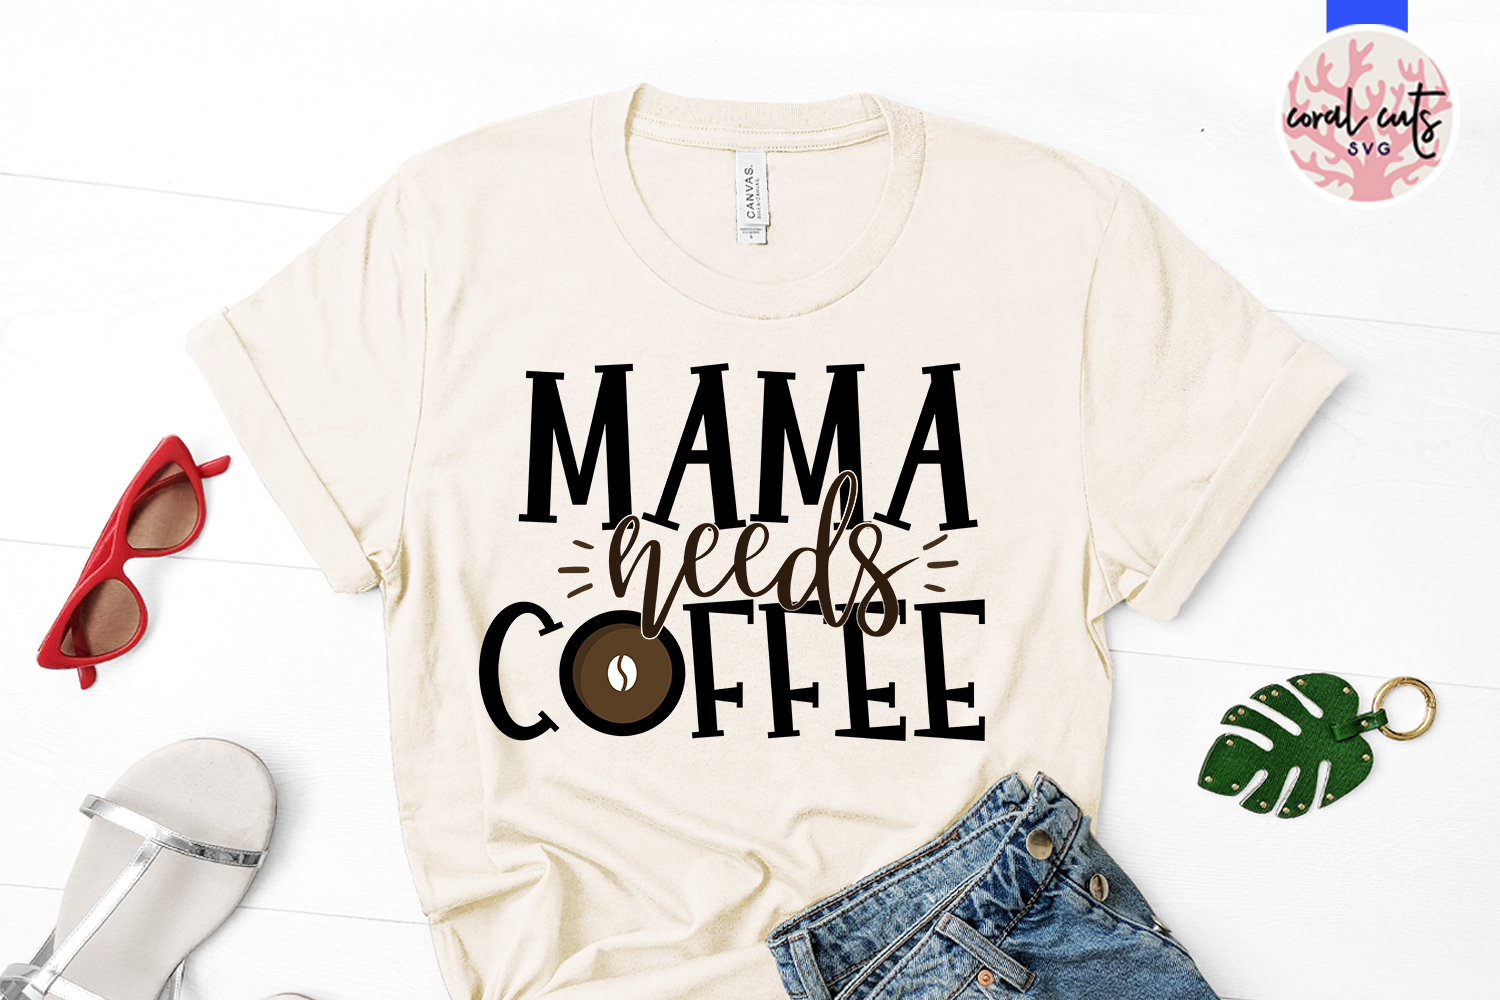 Mama needs a coffee - Mother SVG EPS DXF PNG Cutting File example image 2